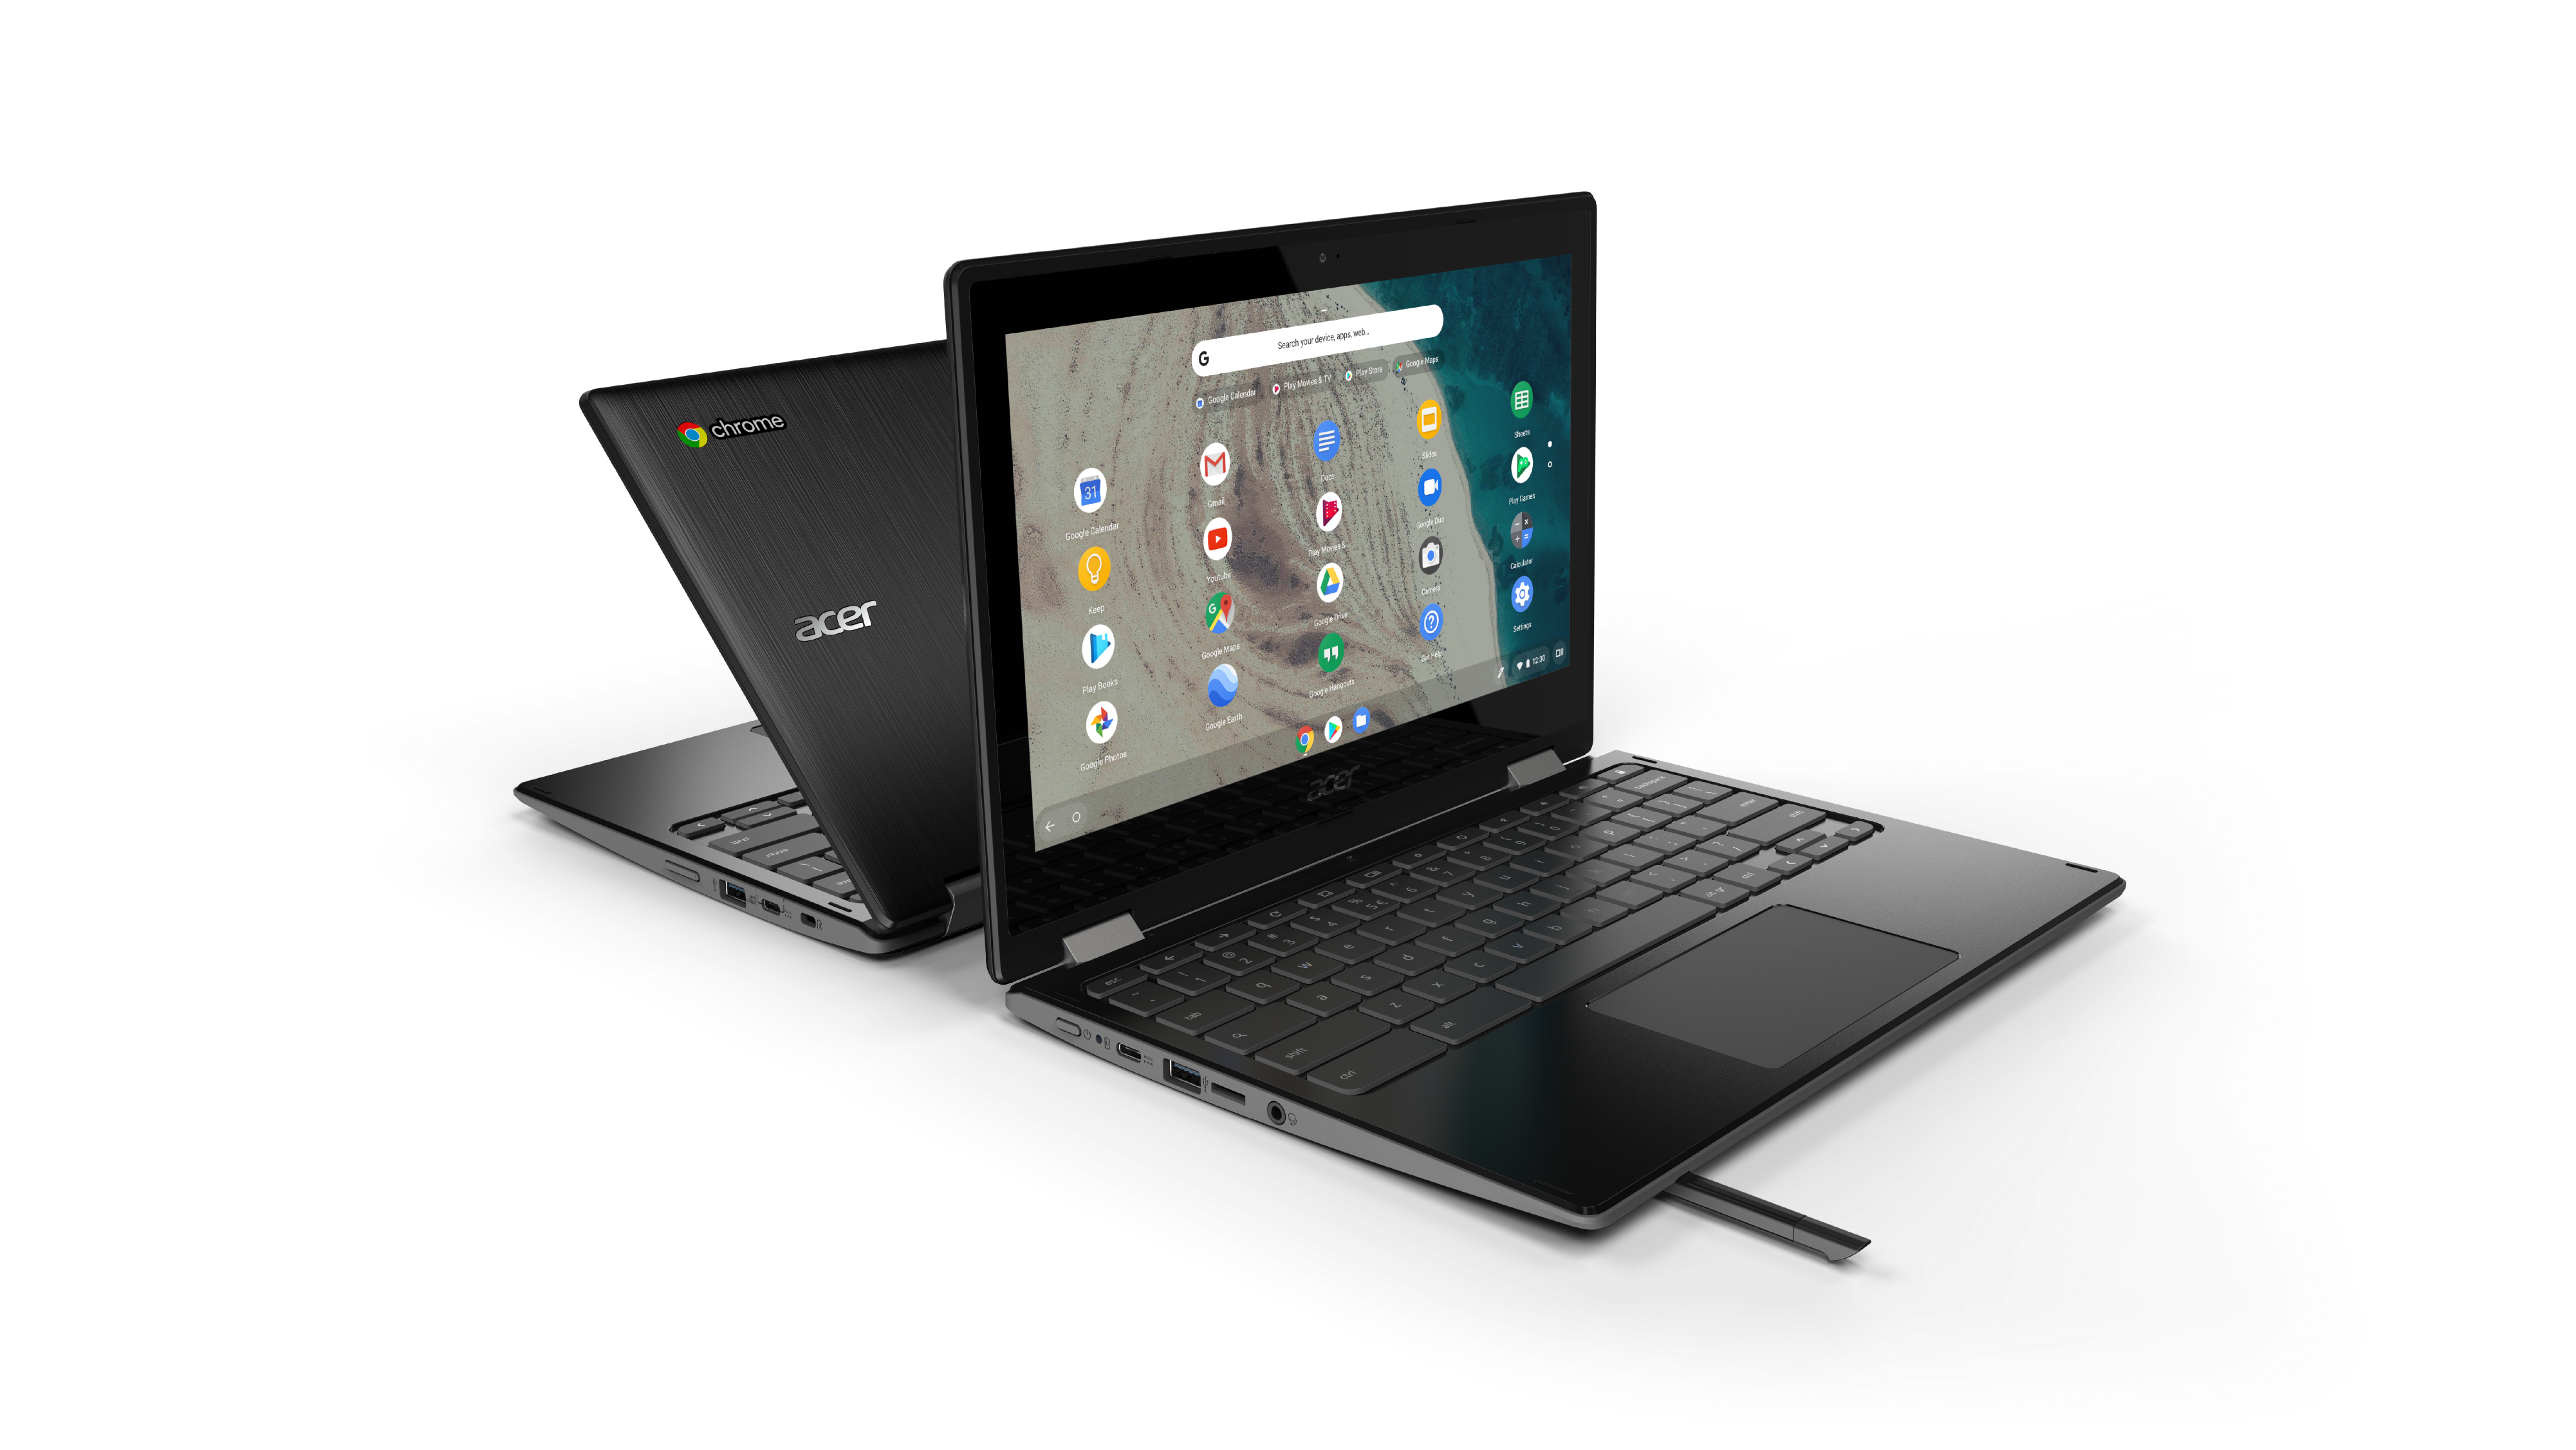 Acer Announces New 11 6 Inch Chromebooks Including Amd Powered Convertible 9to5google